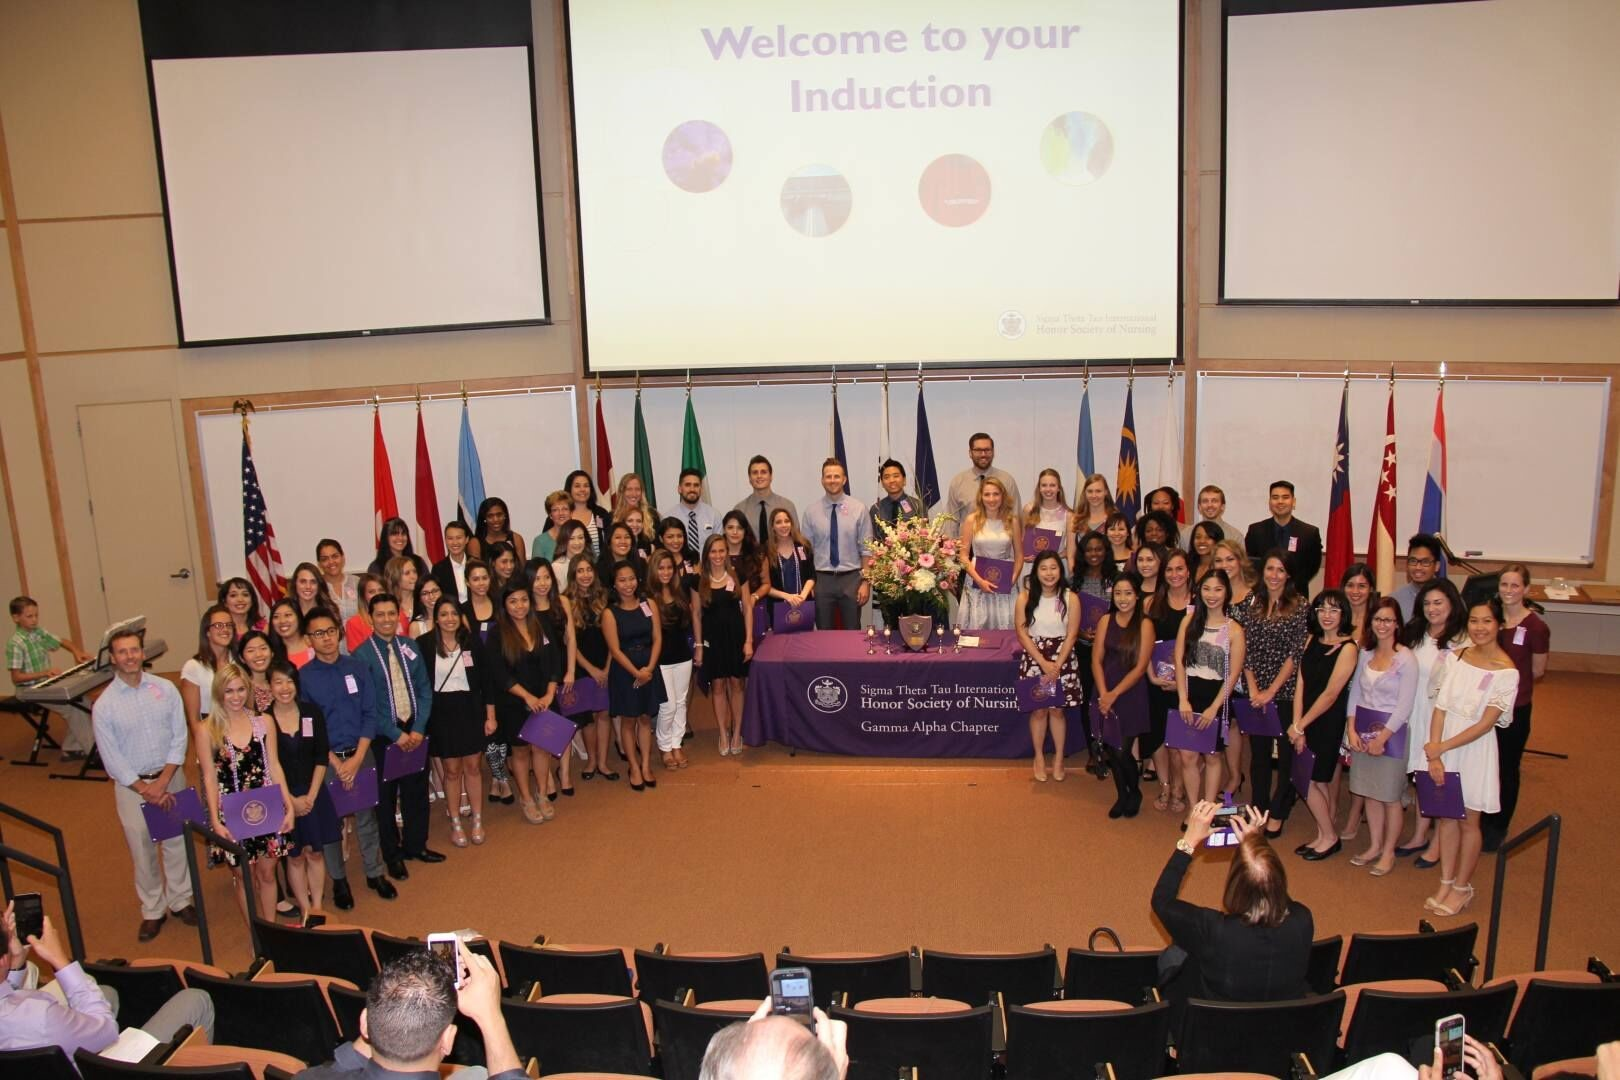 2016 STTI New Member Induction